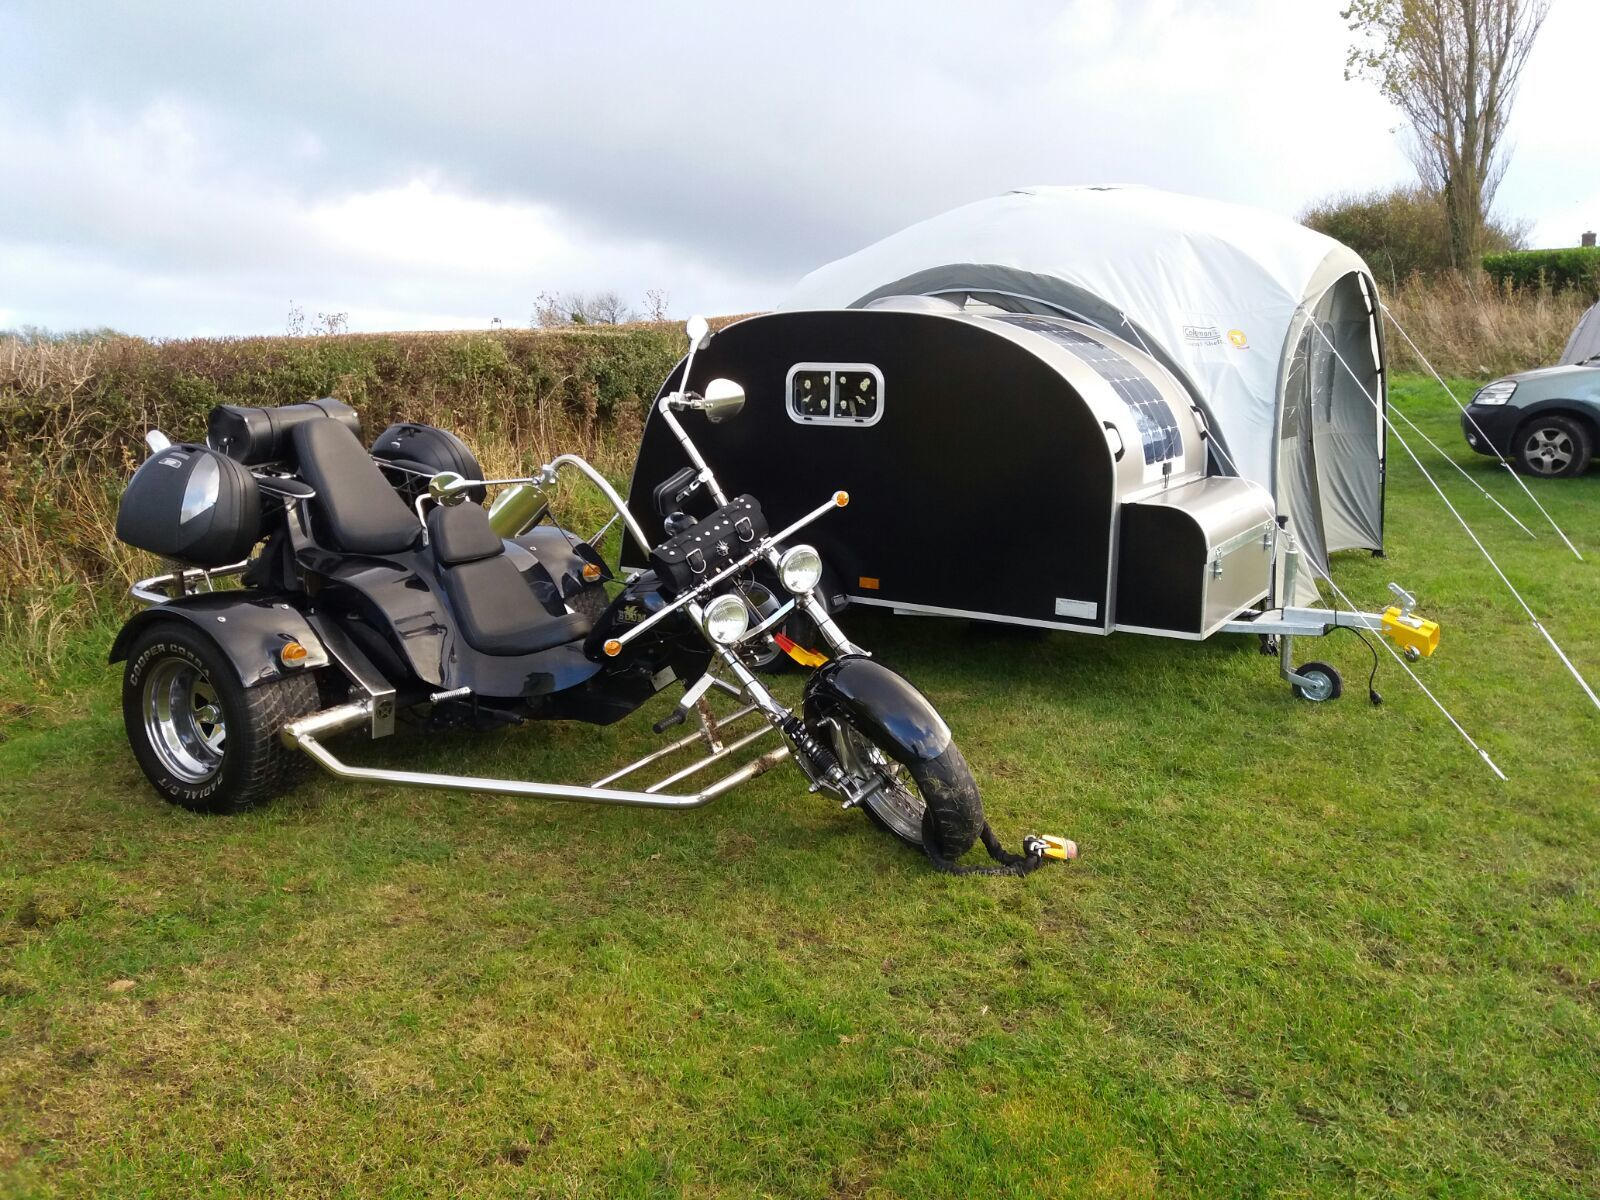 Glampa Campa  pulled with Trike